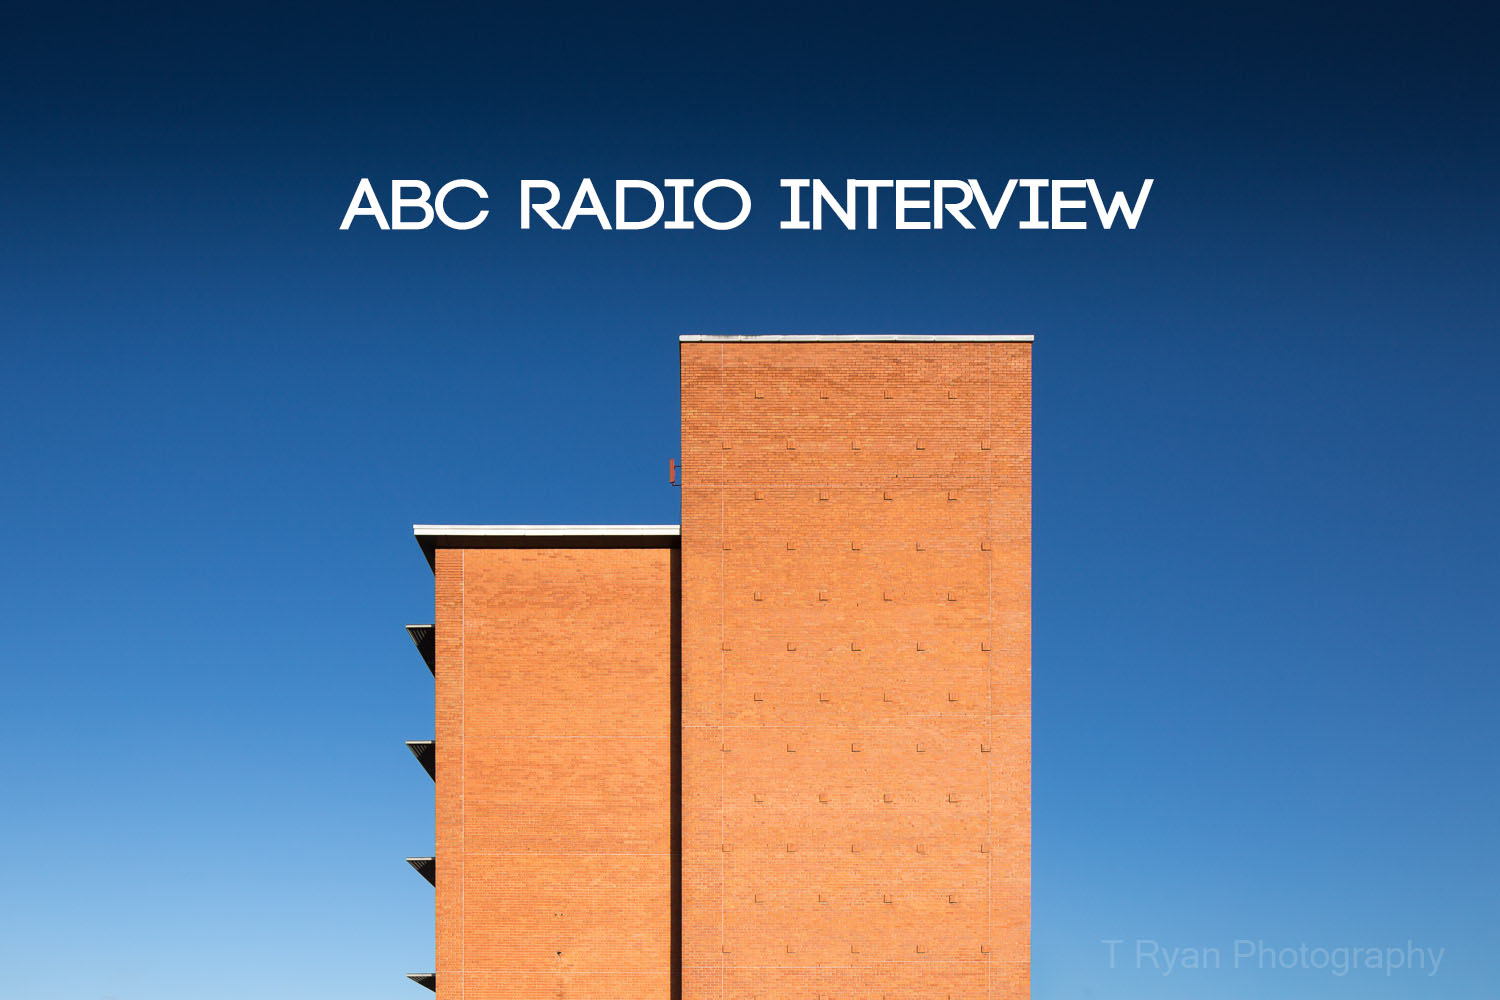 ABC Radio Tasmanian Modernism